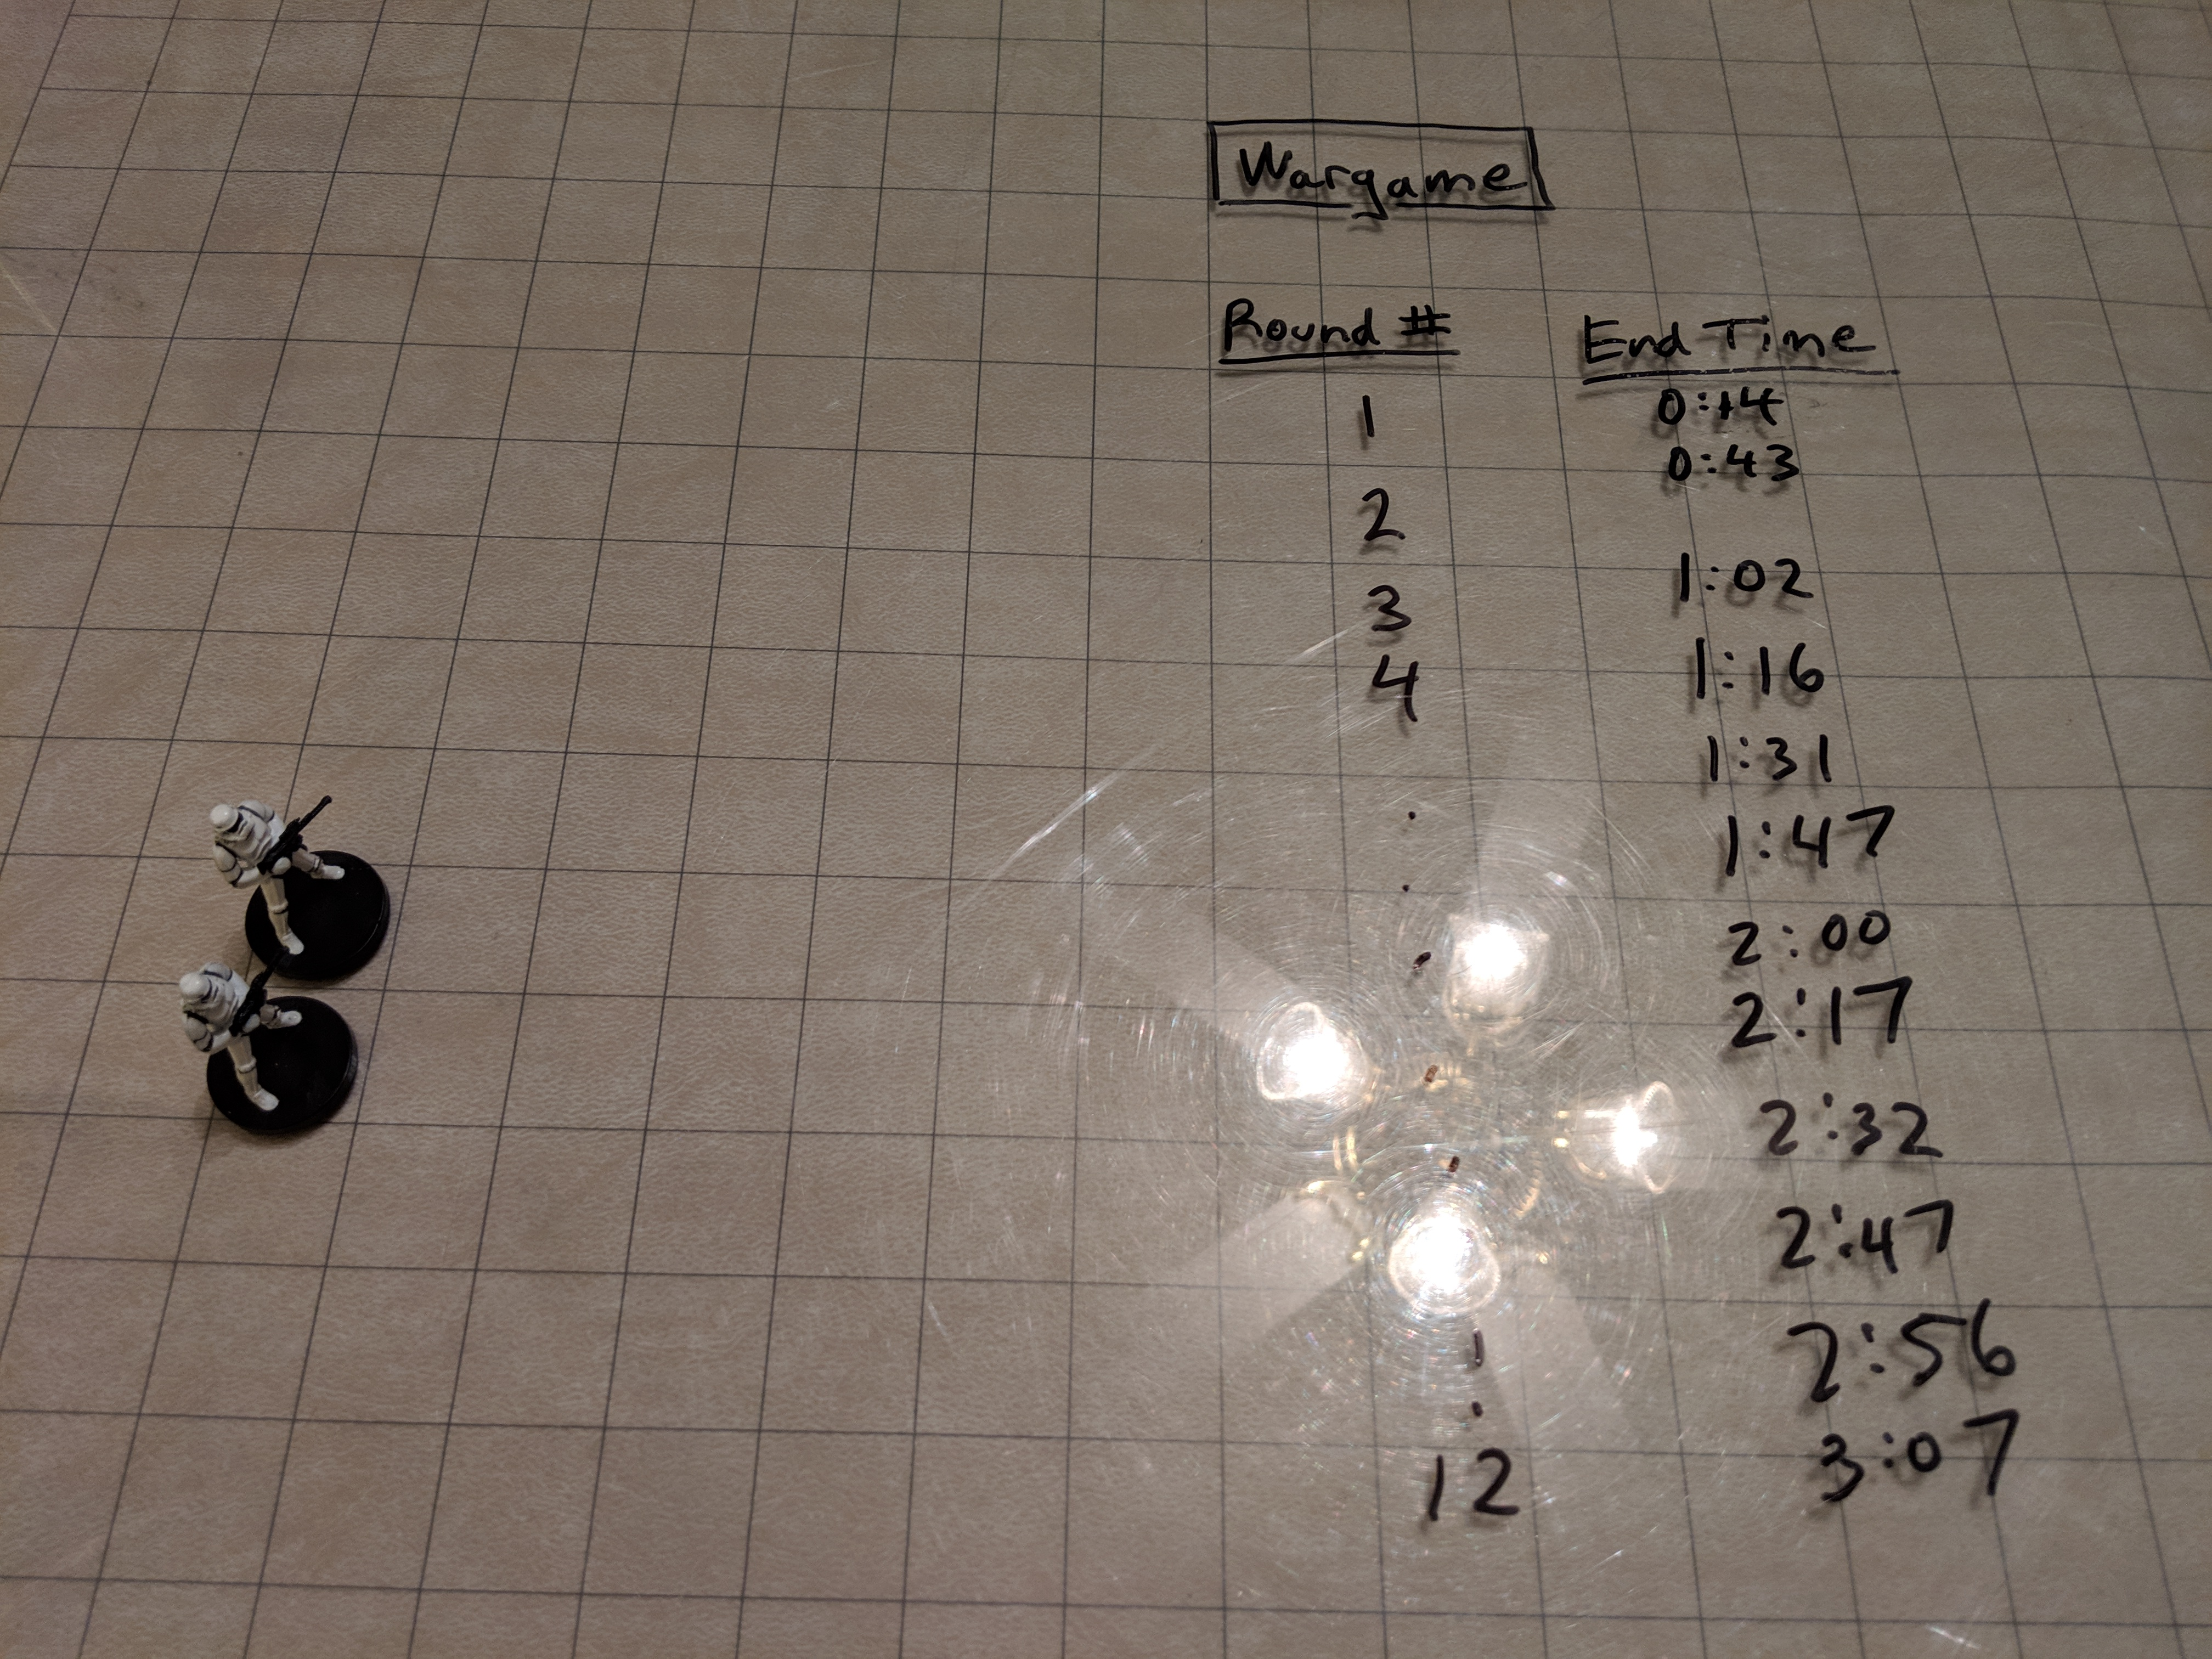 Wargame Combat Results